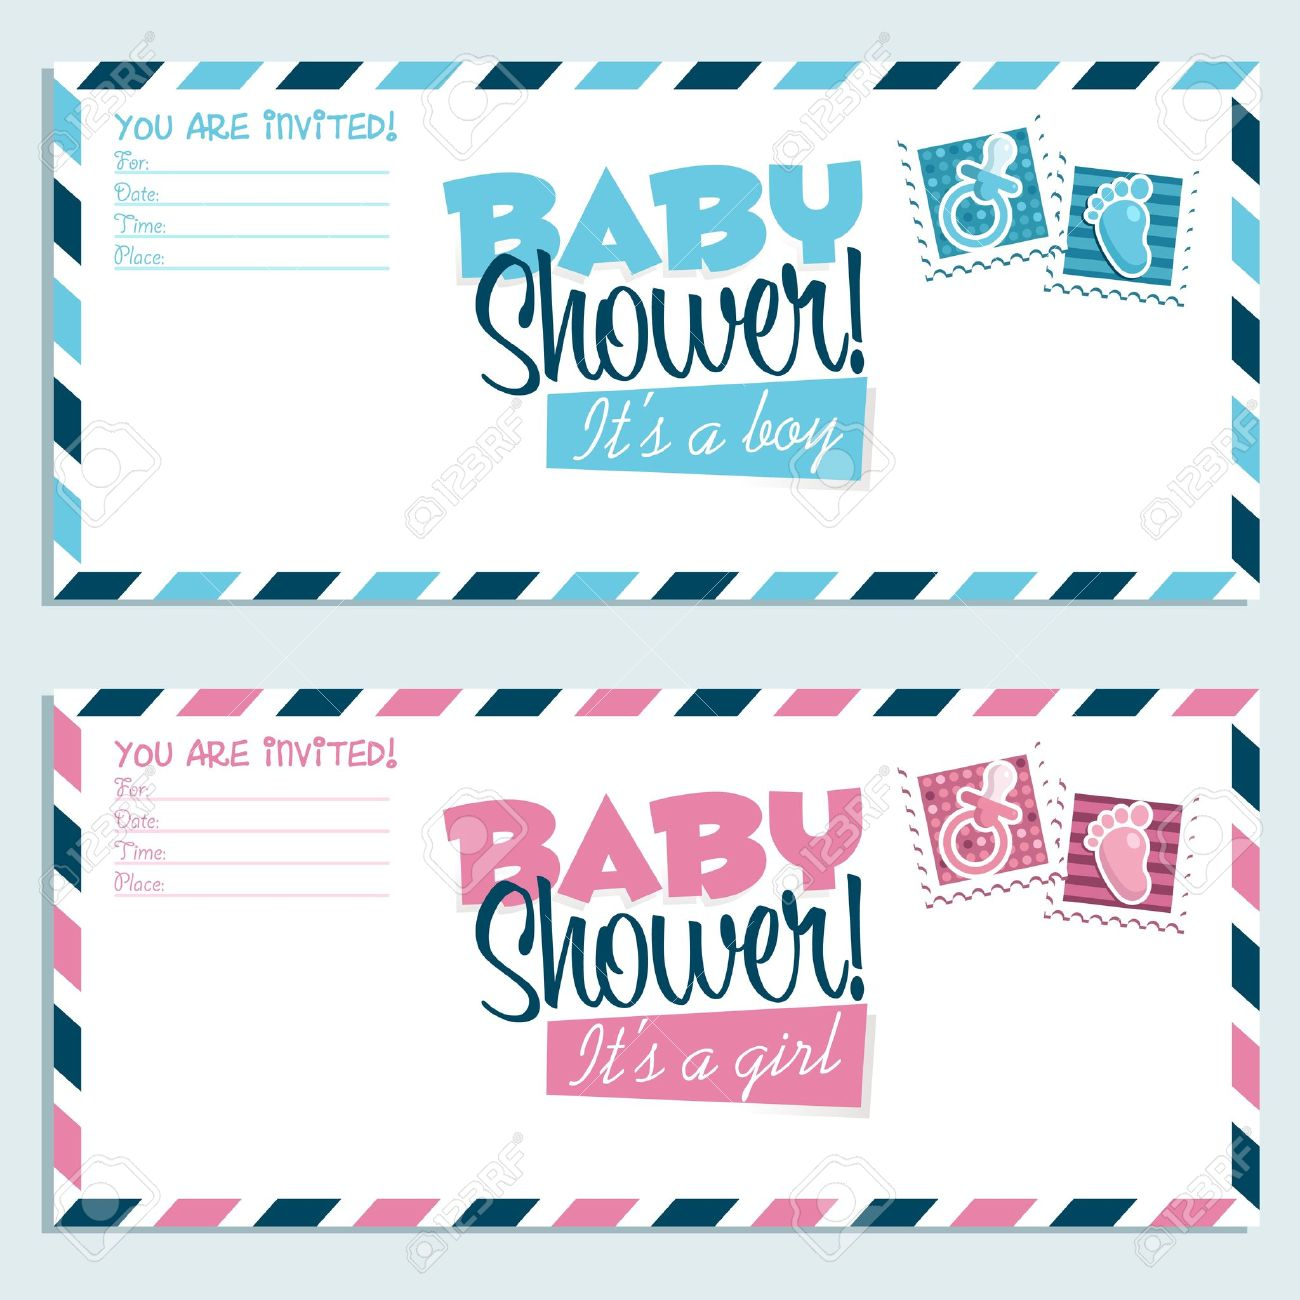 Baby Shower Invitation Envelopes Royalty Free Cliparts, Vectors, And ...